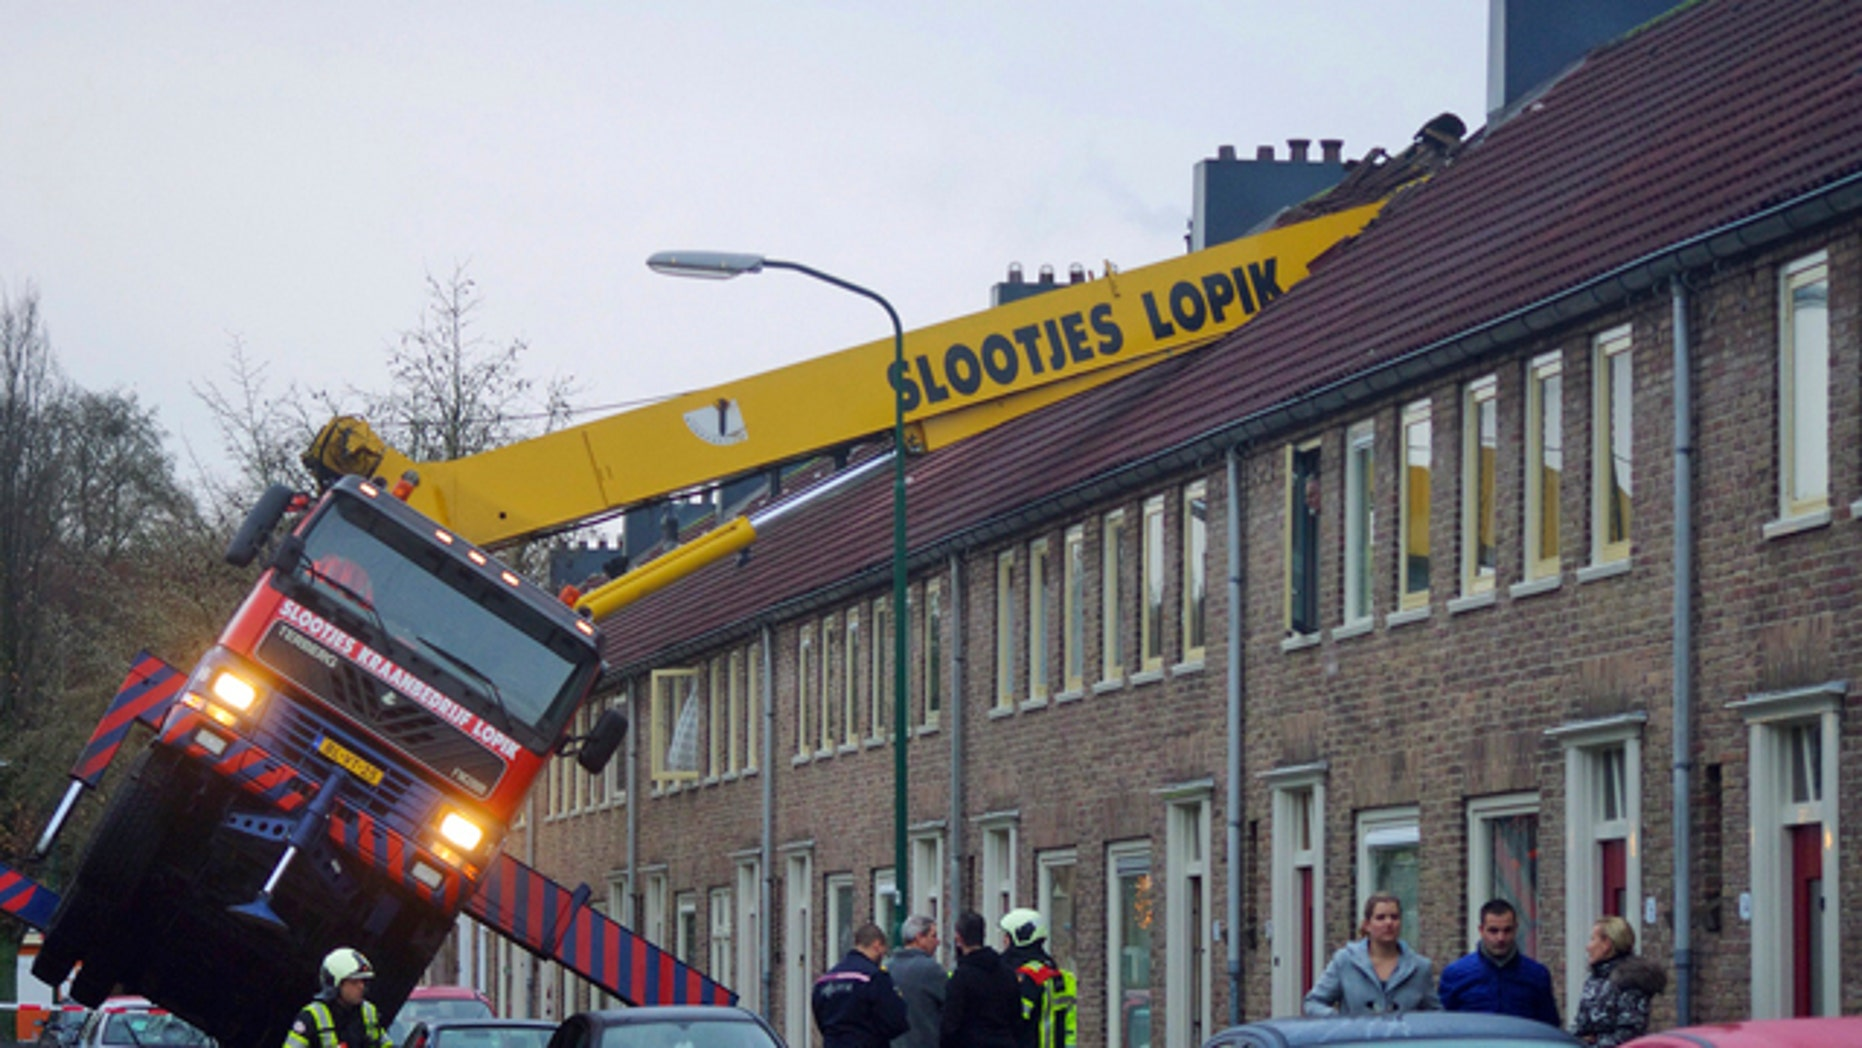 December 13, 2014: A crane which crashed into the roof of a house is seen following an unusual marriage proposal by a man who wished to be lifted in front of the bedroom window of his girlfriend to ask for her hand in marriage, in the Dutch town of IJsselstein. (AP/AS Media)